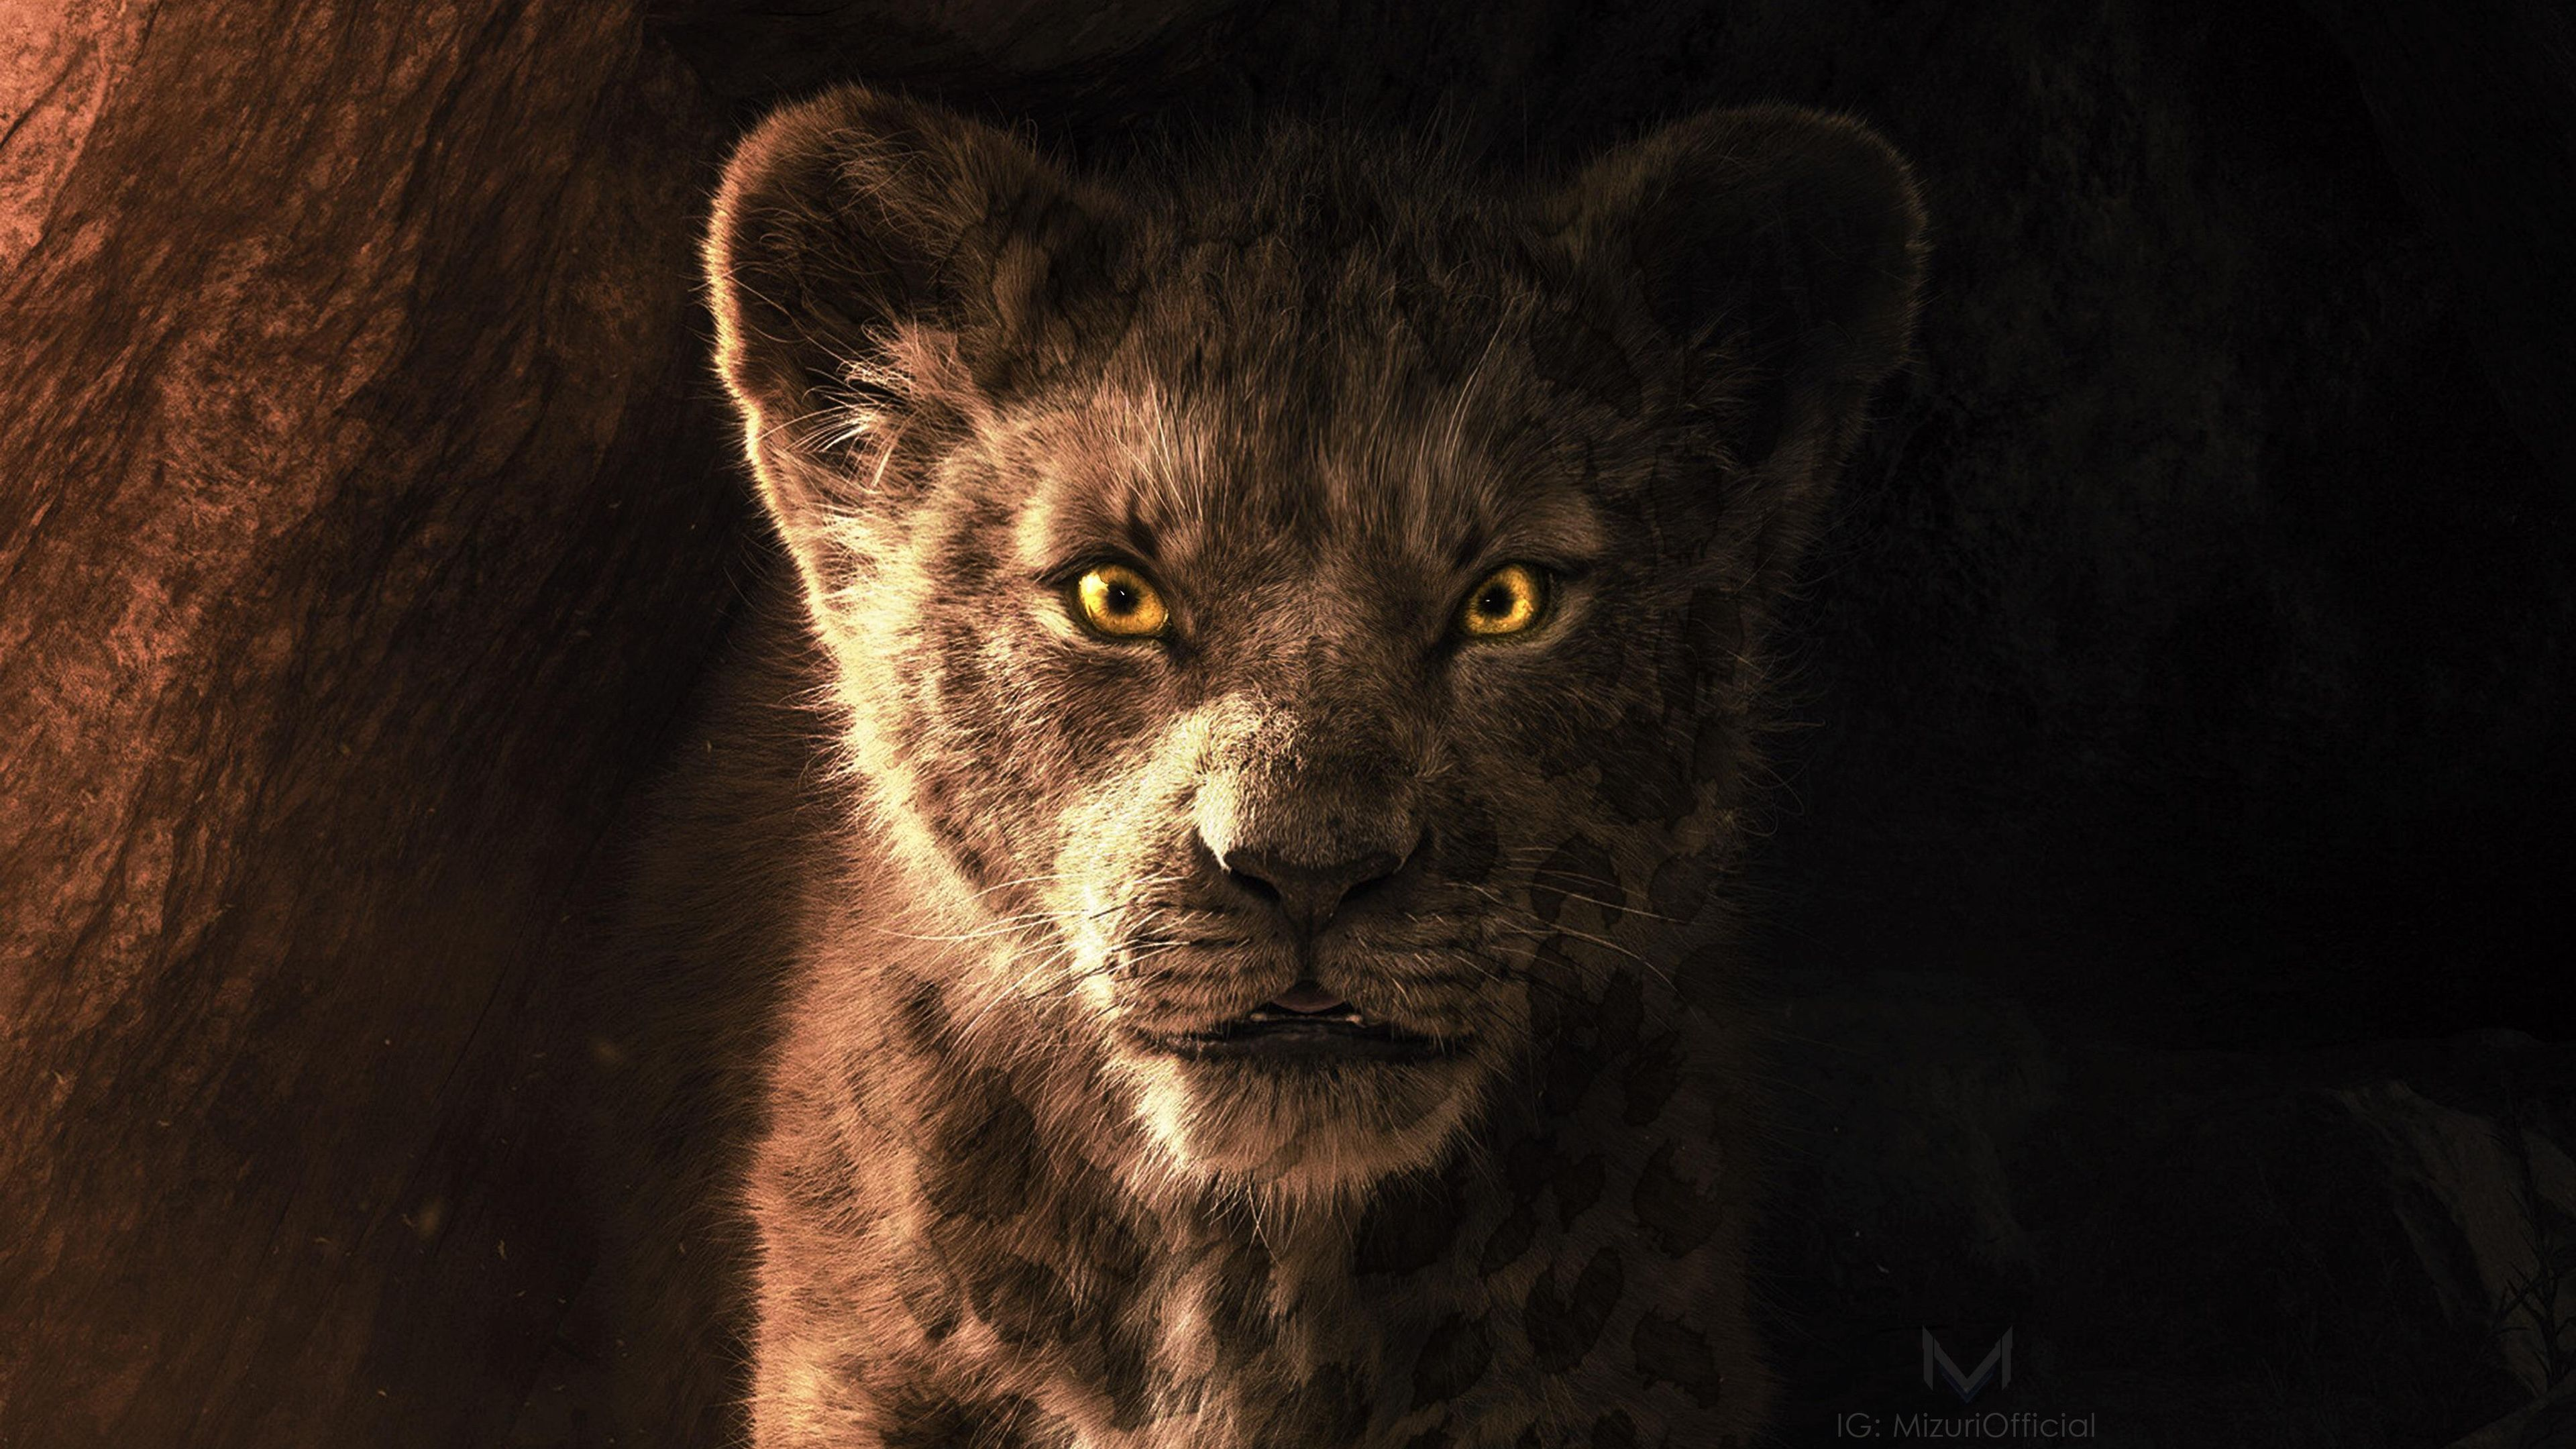 Wallpaper 4k The Lion King Simba 2019 4k Lion king simba